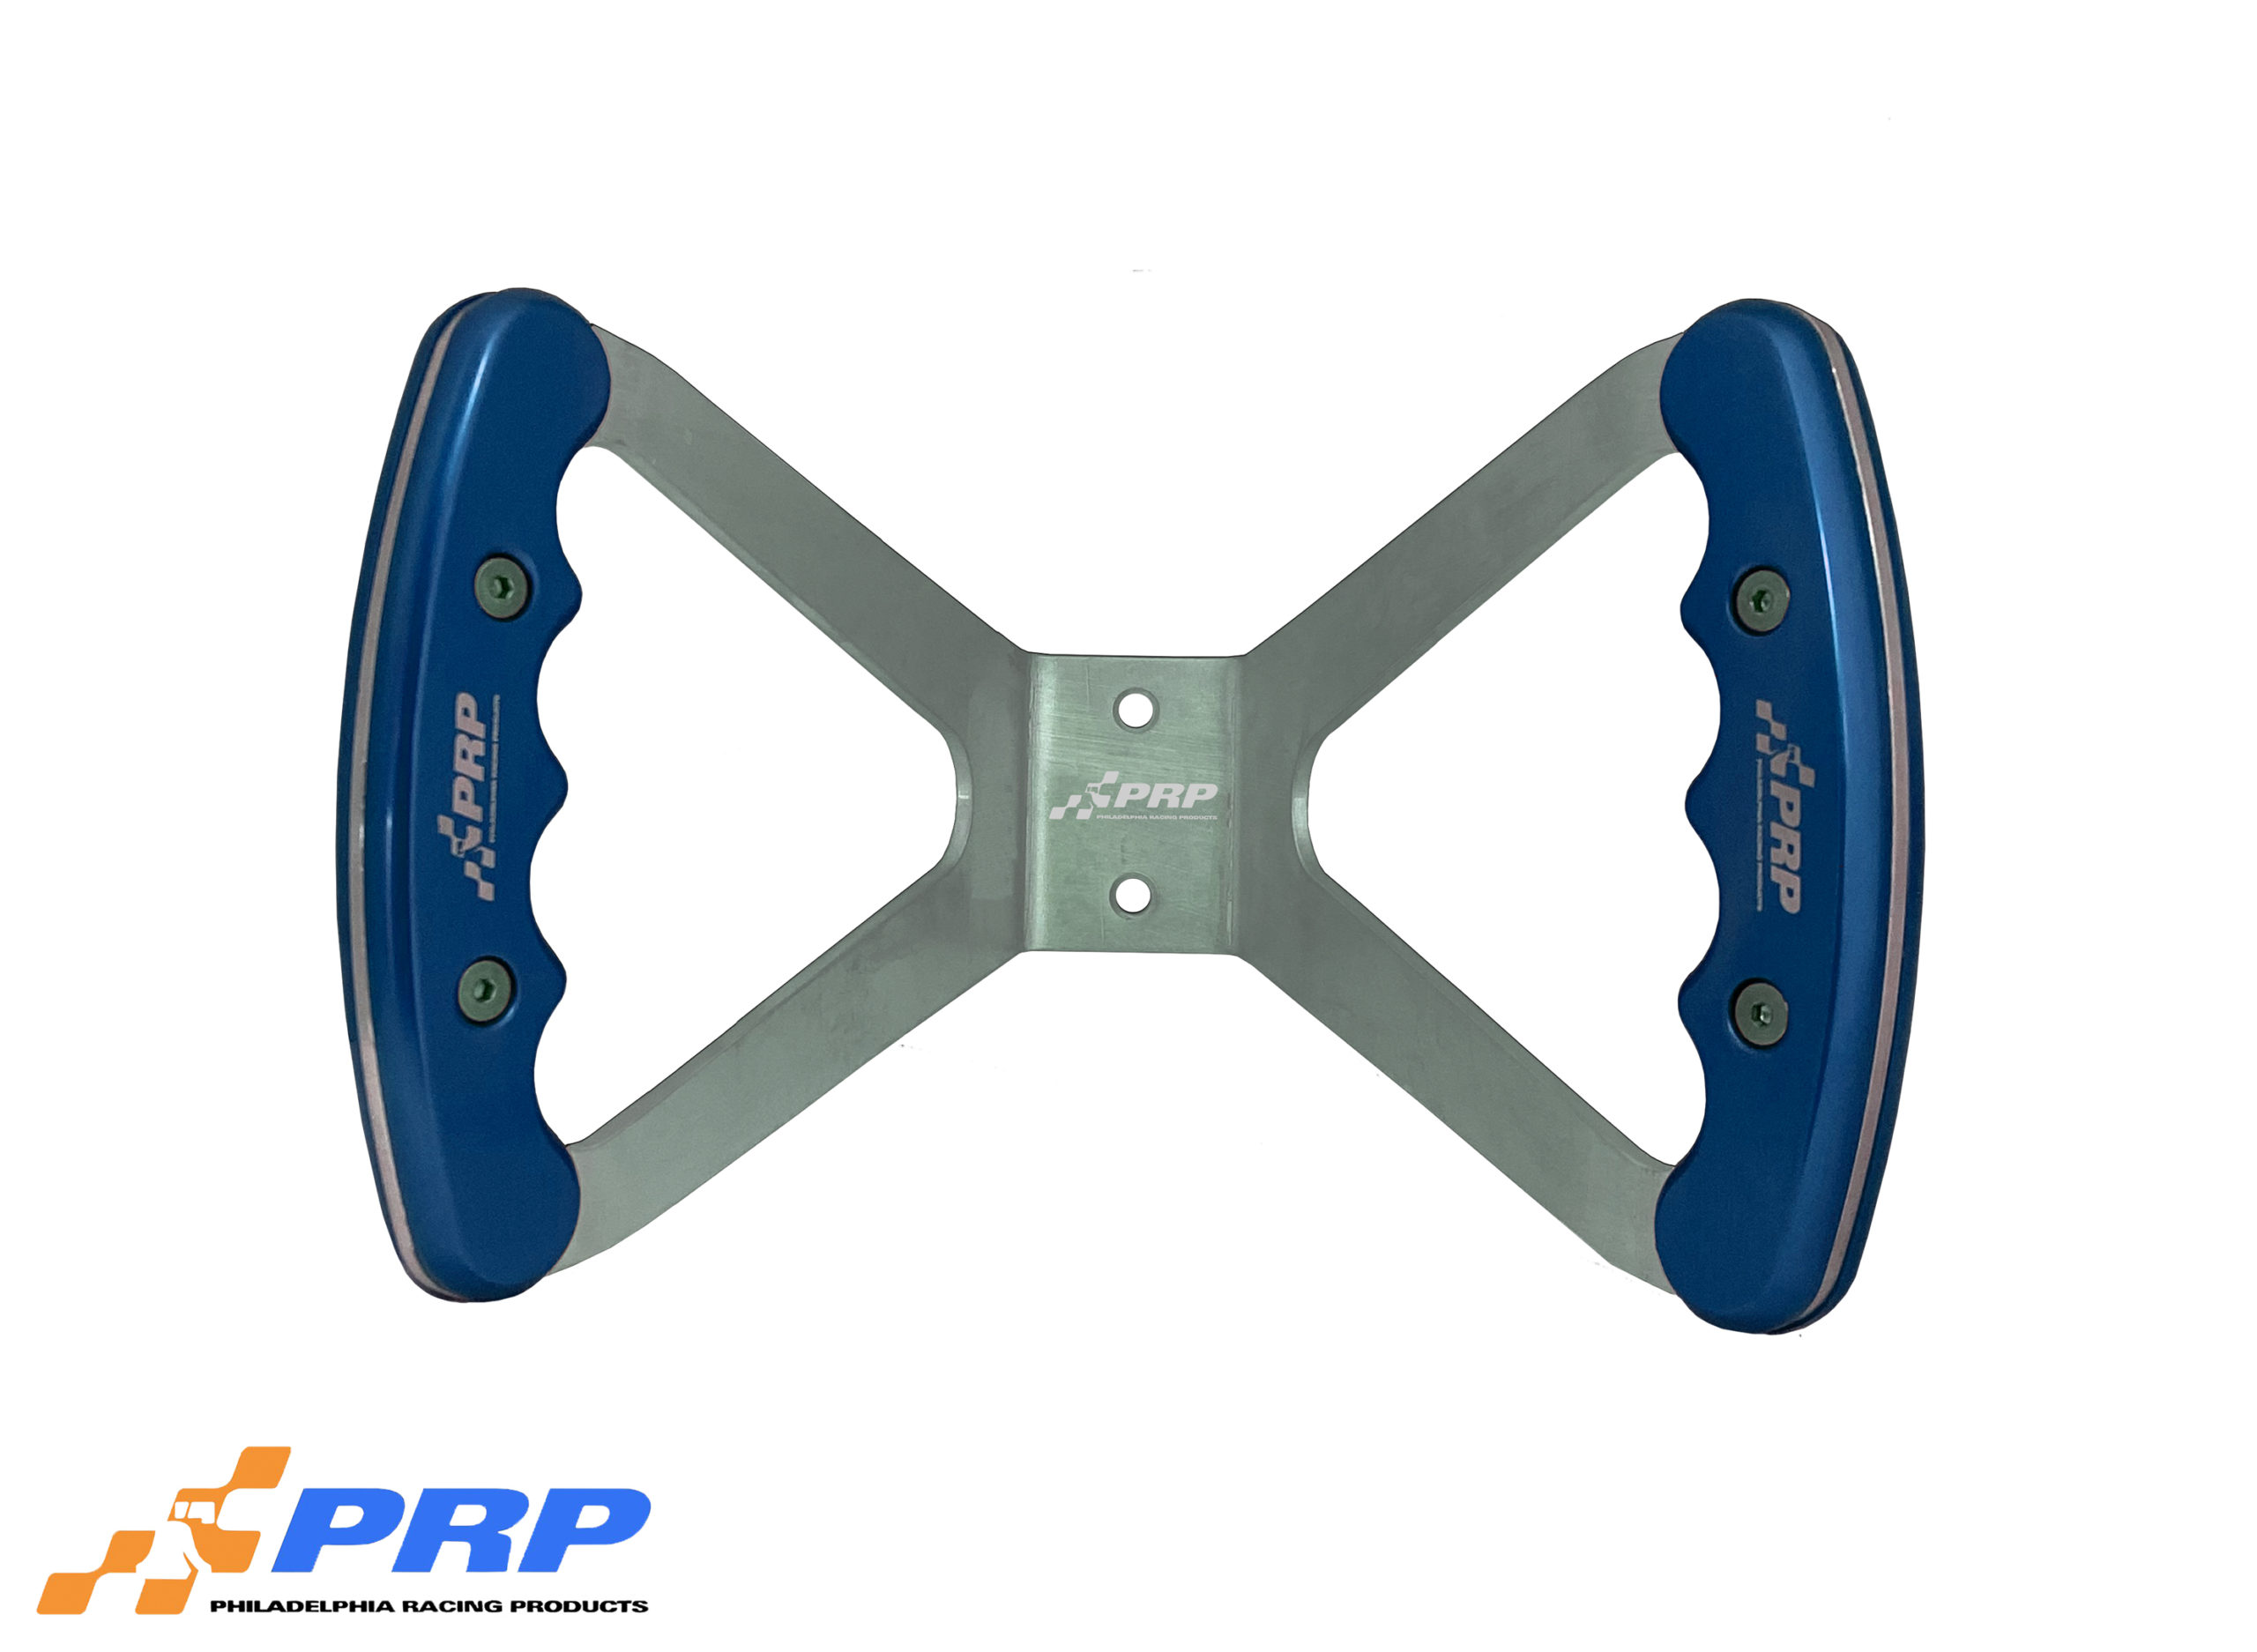 Jr. Dragster Butterfly Steering Wheels Blue Grips on Silver wheel made by Philadelphia Racing Products